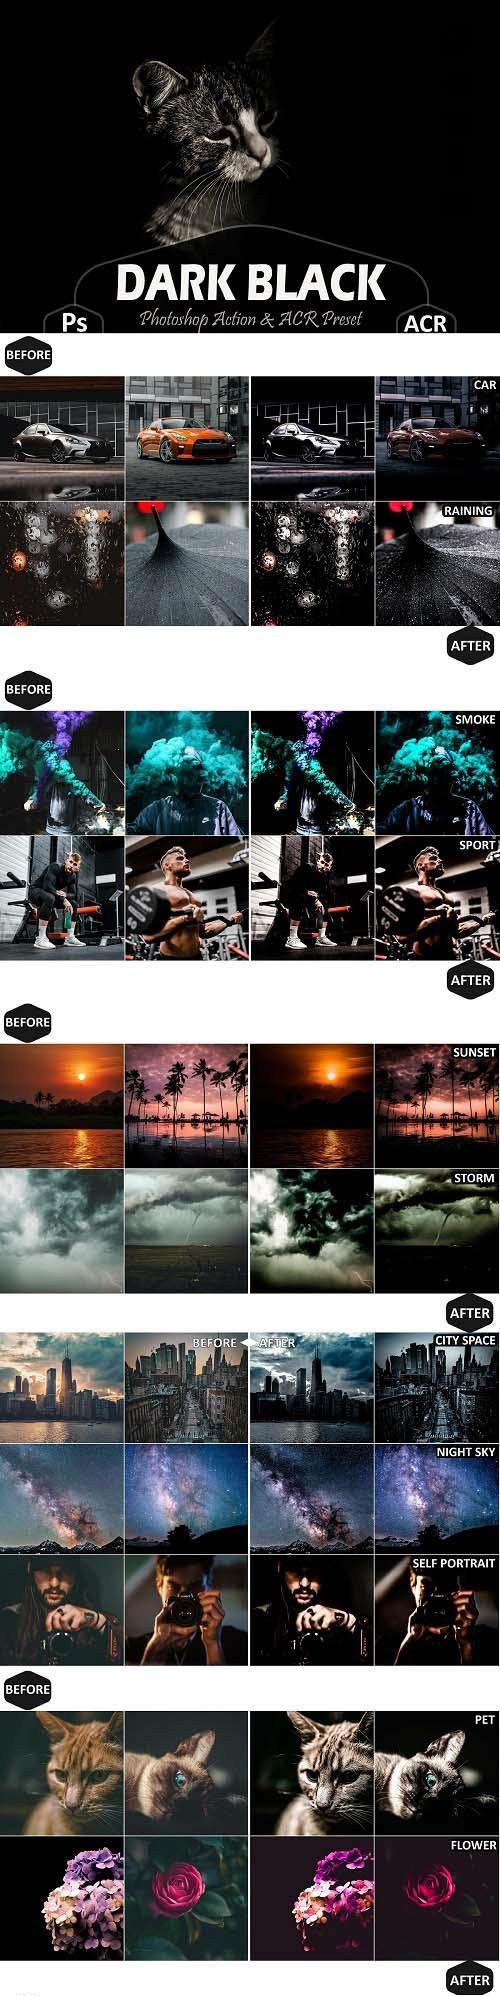 36 Dark Black Photoshop Actions And ACR Presets - 1553543